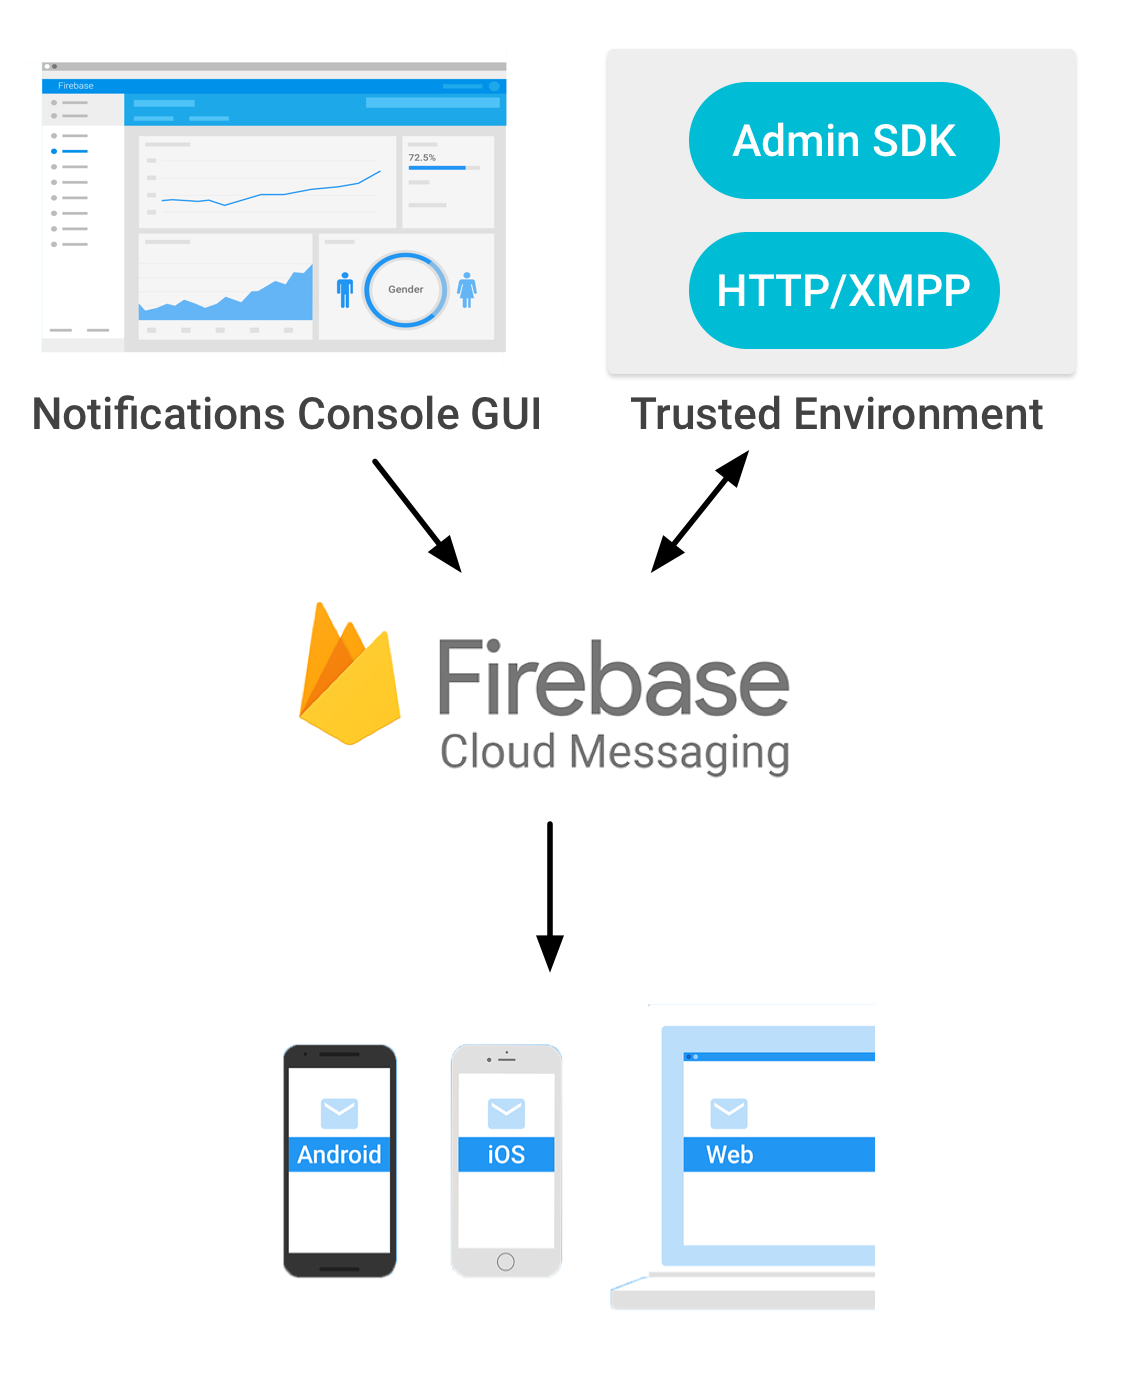 Firebase Cloud Messaging architecture diagram